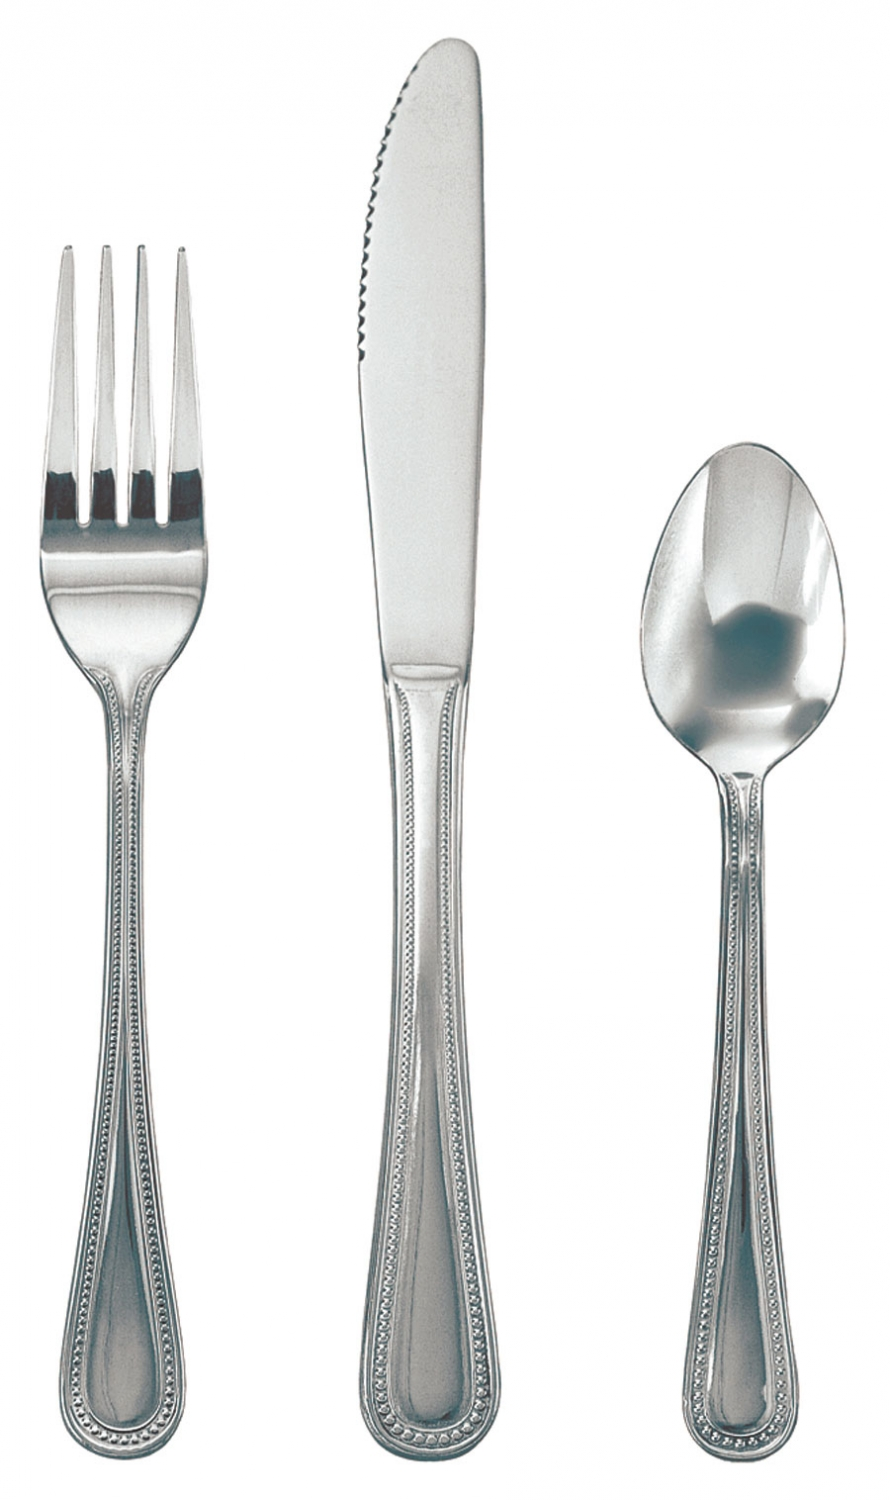 Update International PL-82 Pearl Heavy Weight Bouillon Spoon - 1 doz